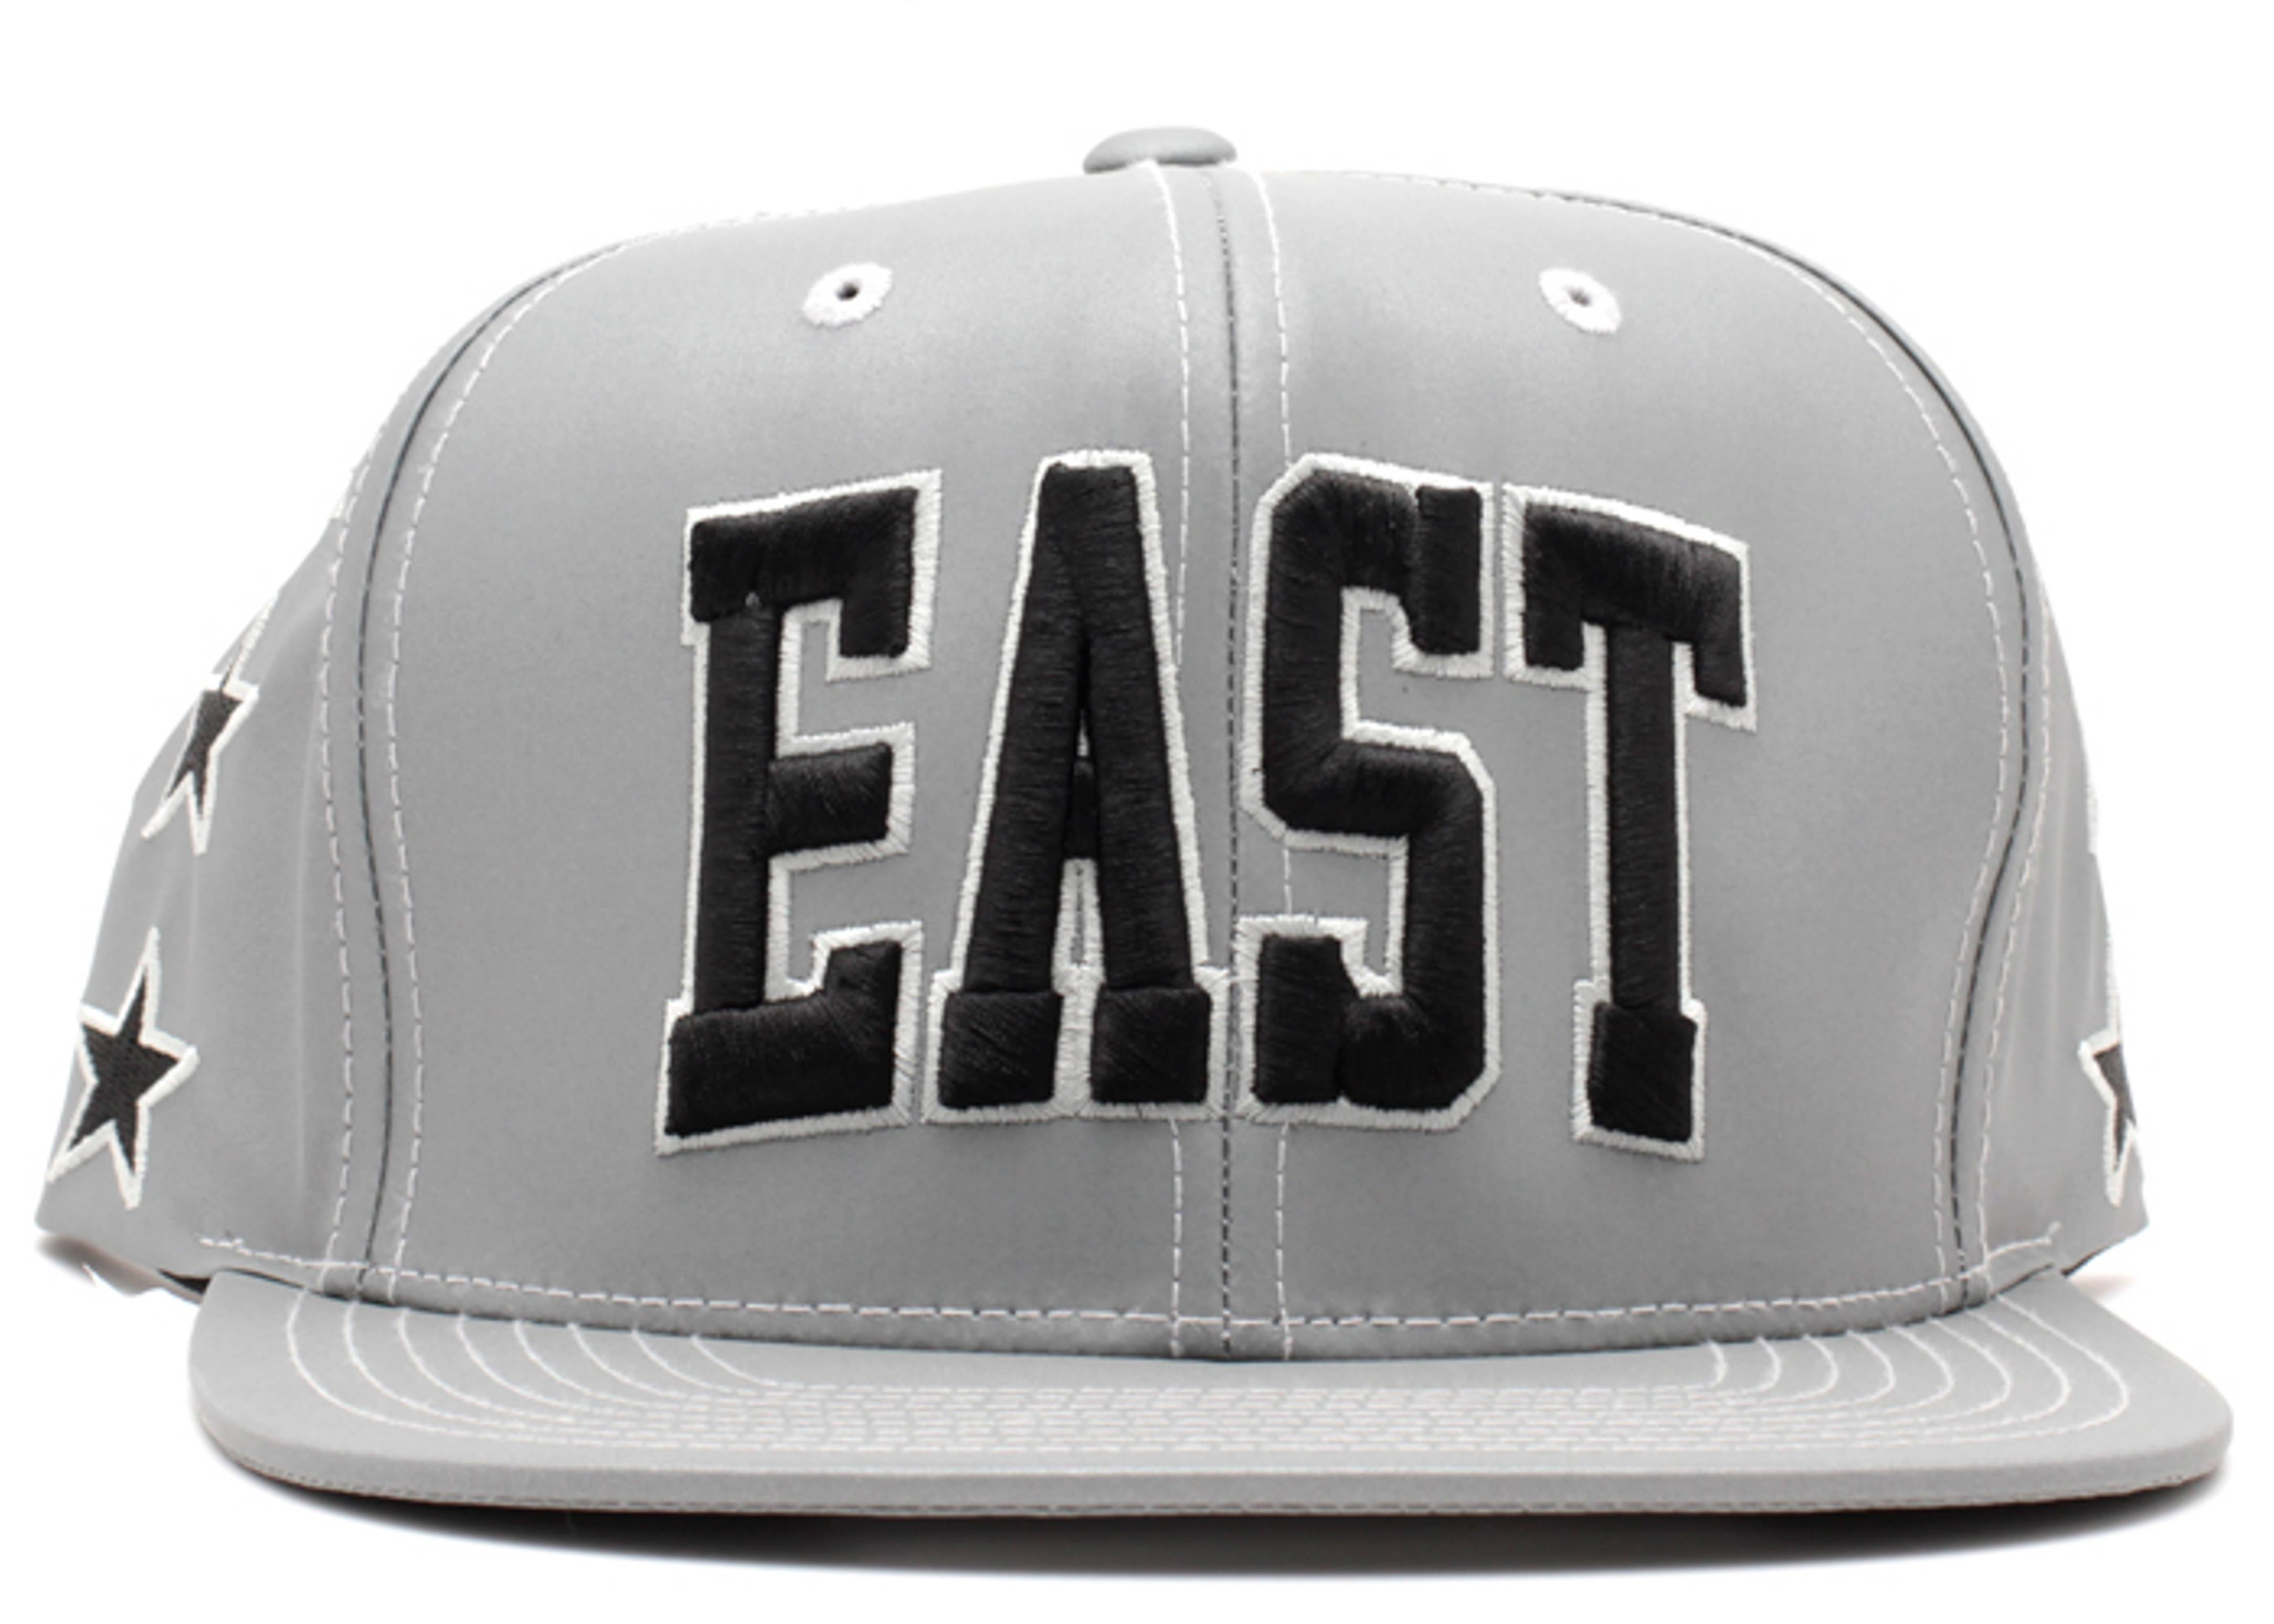 "1989 east nba all-star game strap-back ""3m crown"""